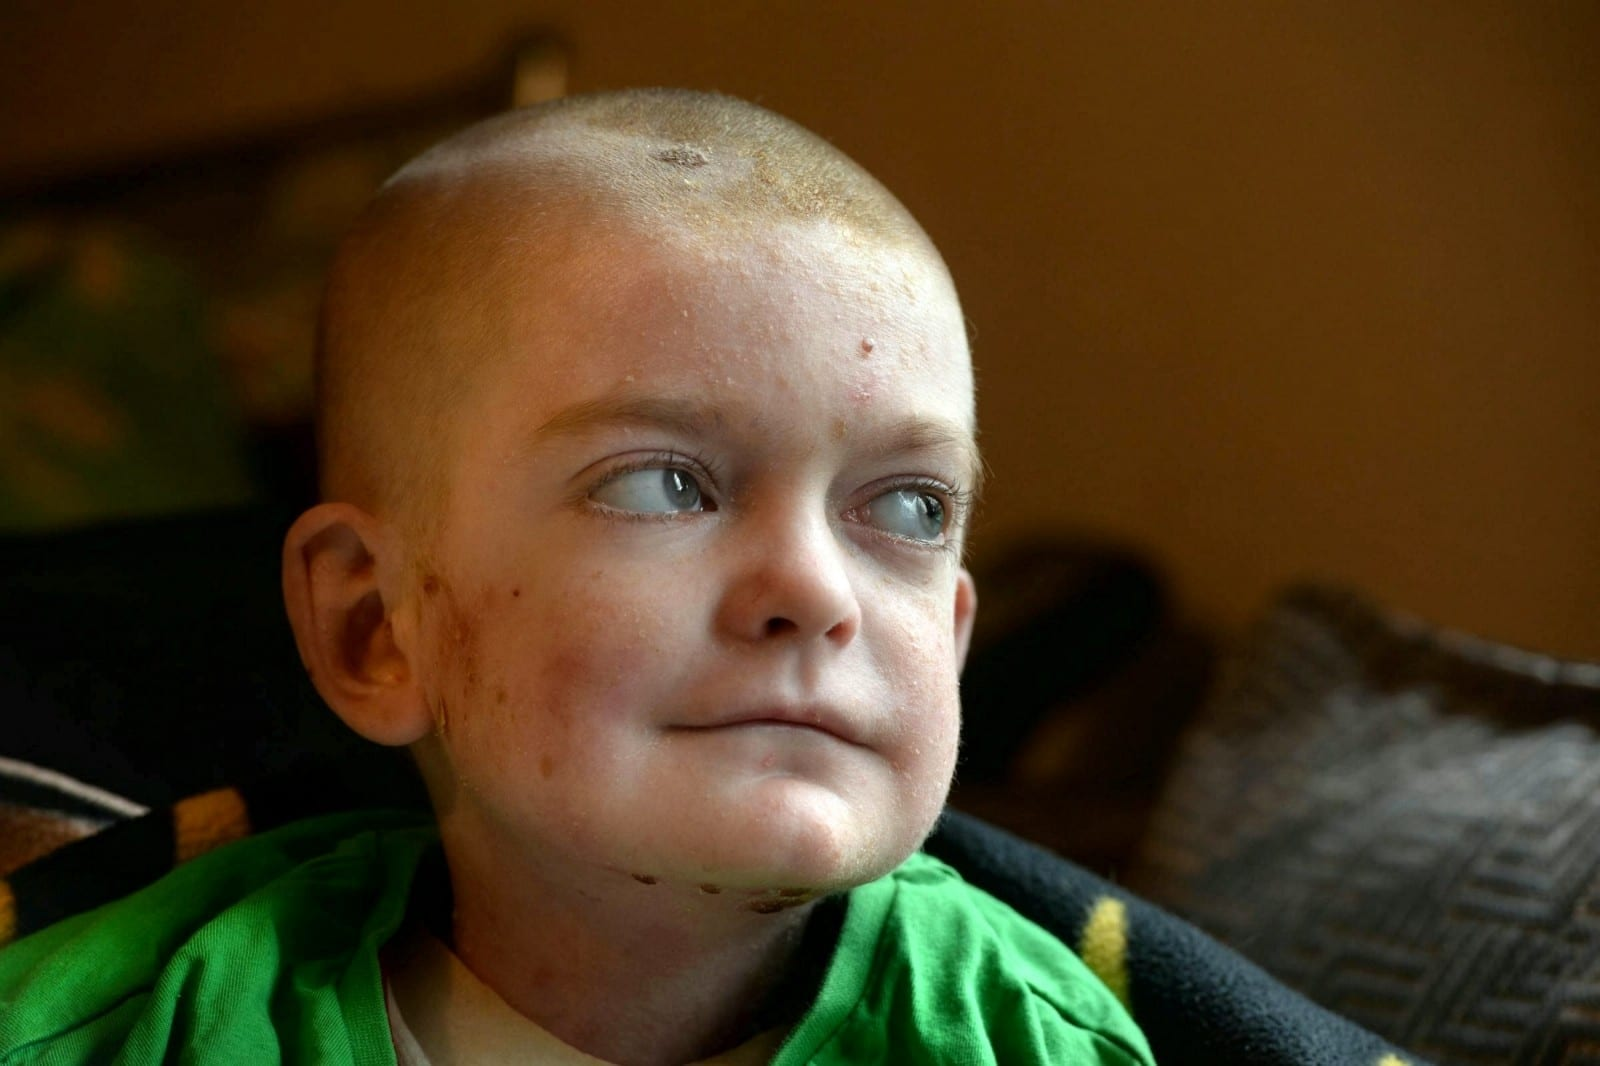 A Heartbroken Mum Is Appealing For Birthday Cards For Her Son Battling  Harrowing Skin Condition Which Has Left Him Feeling Like He's